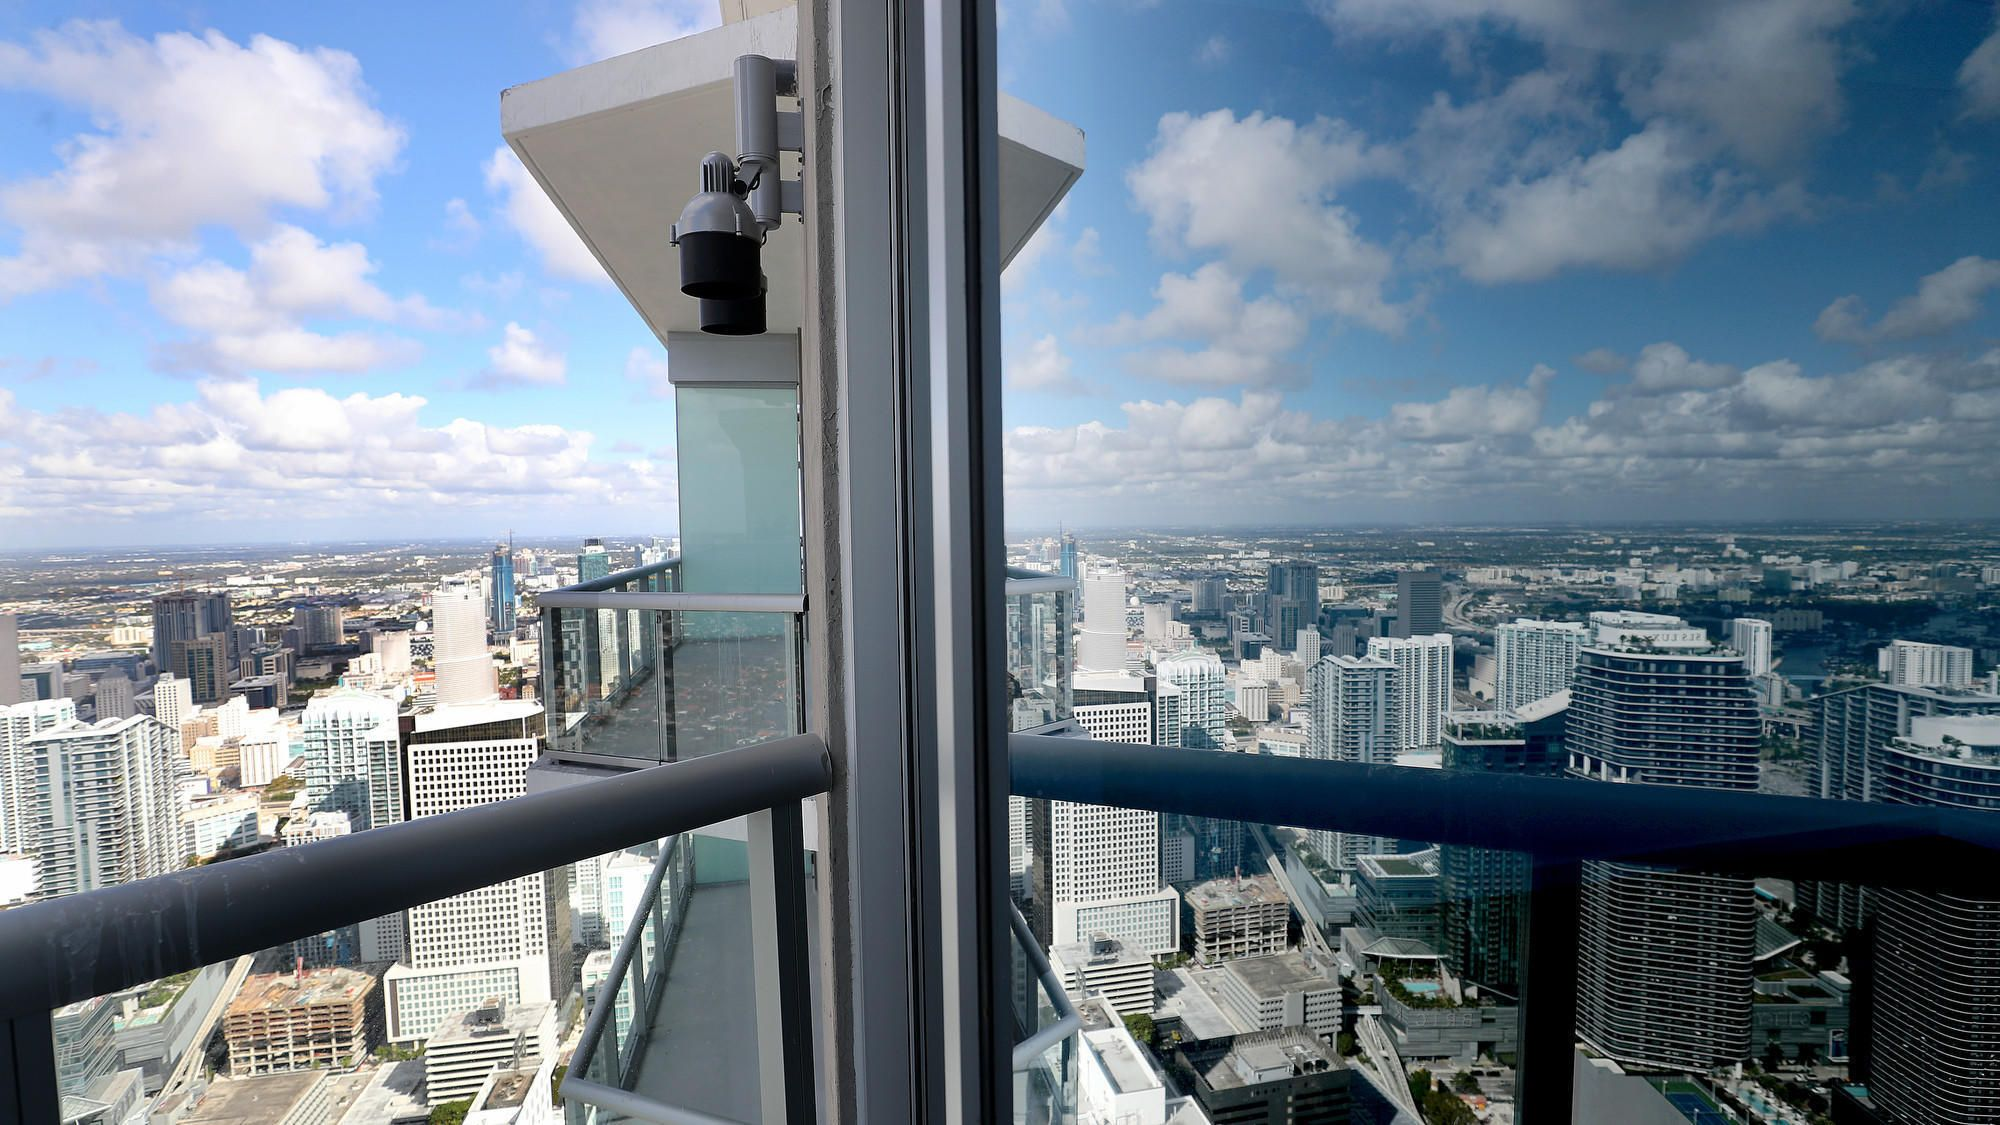 Watch Florida S Tallest Skyscraper Boasts Best Views South Of New York City News Miami Follow Miami Building Florida Skyscraper